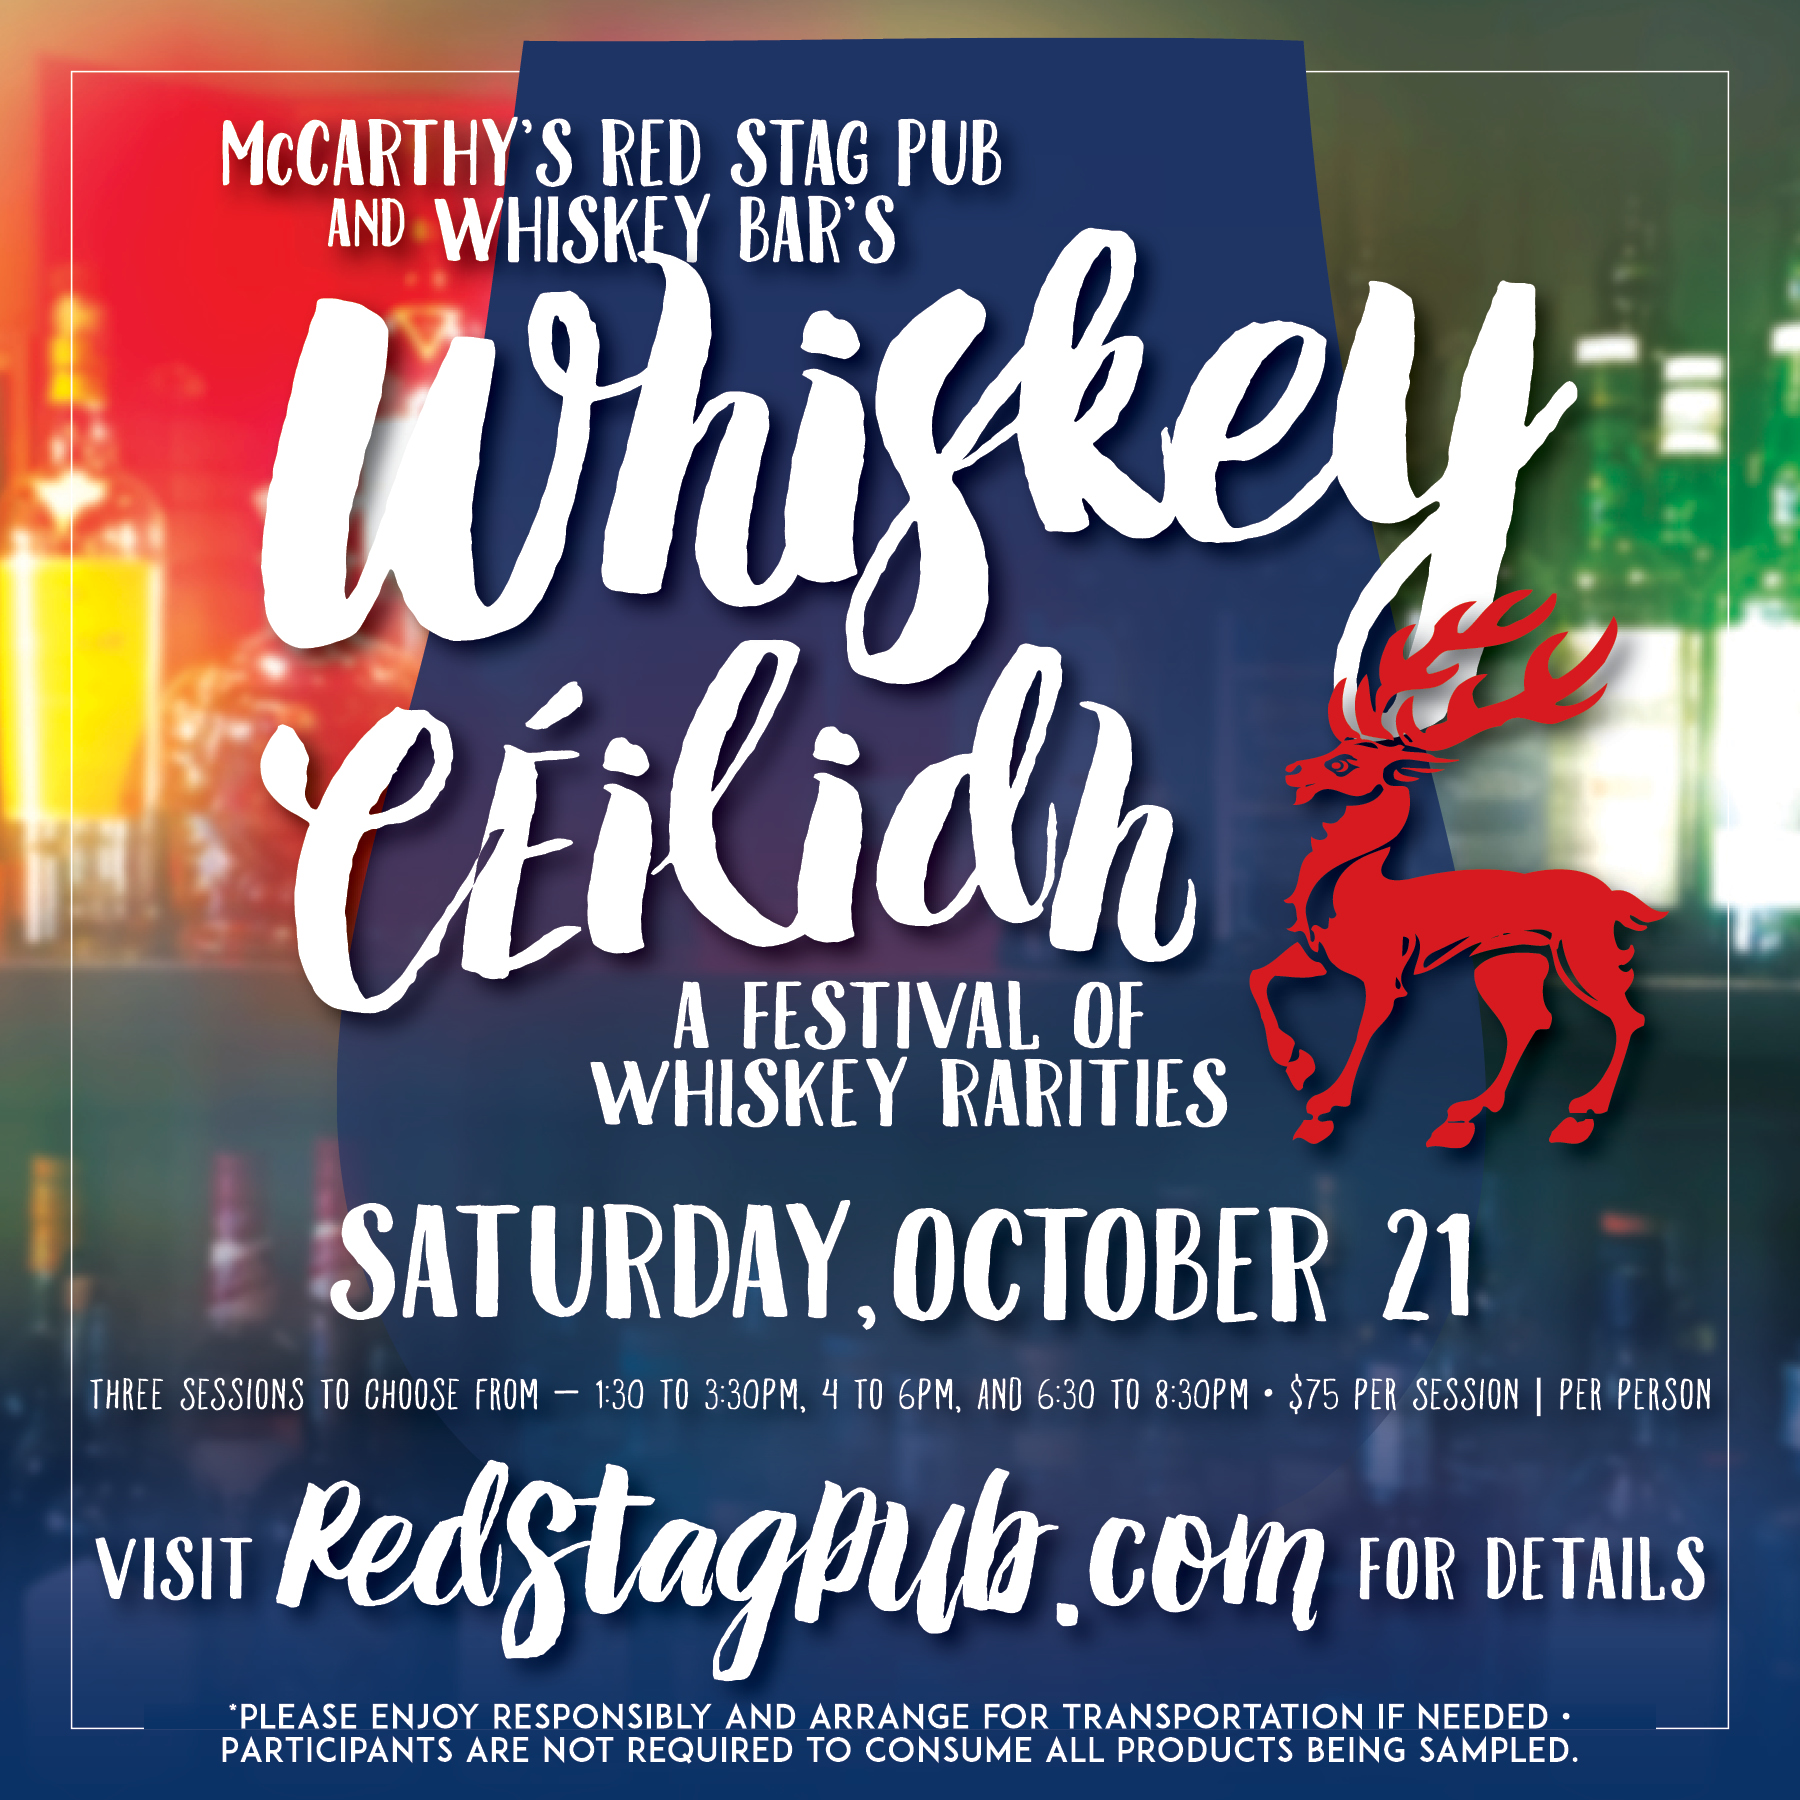 WHISKEY CEILIDH FESTIVAL • INSTAGRAM ADVERTISEMENT   CLIENT: McCARTHY'S RED STAG PUB AND WHISKEY BAR • BETHLEHEM, PA BRIEF: Attract whiskey drinkers to McCarthy's first annual whiskey festival. PLACEMENT: McCarthy's Red Stag Pub Instagram Account WORK: Copy writing and layout through Adobe InDesign. Vector graphics